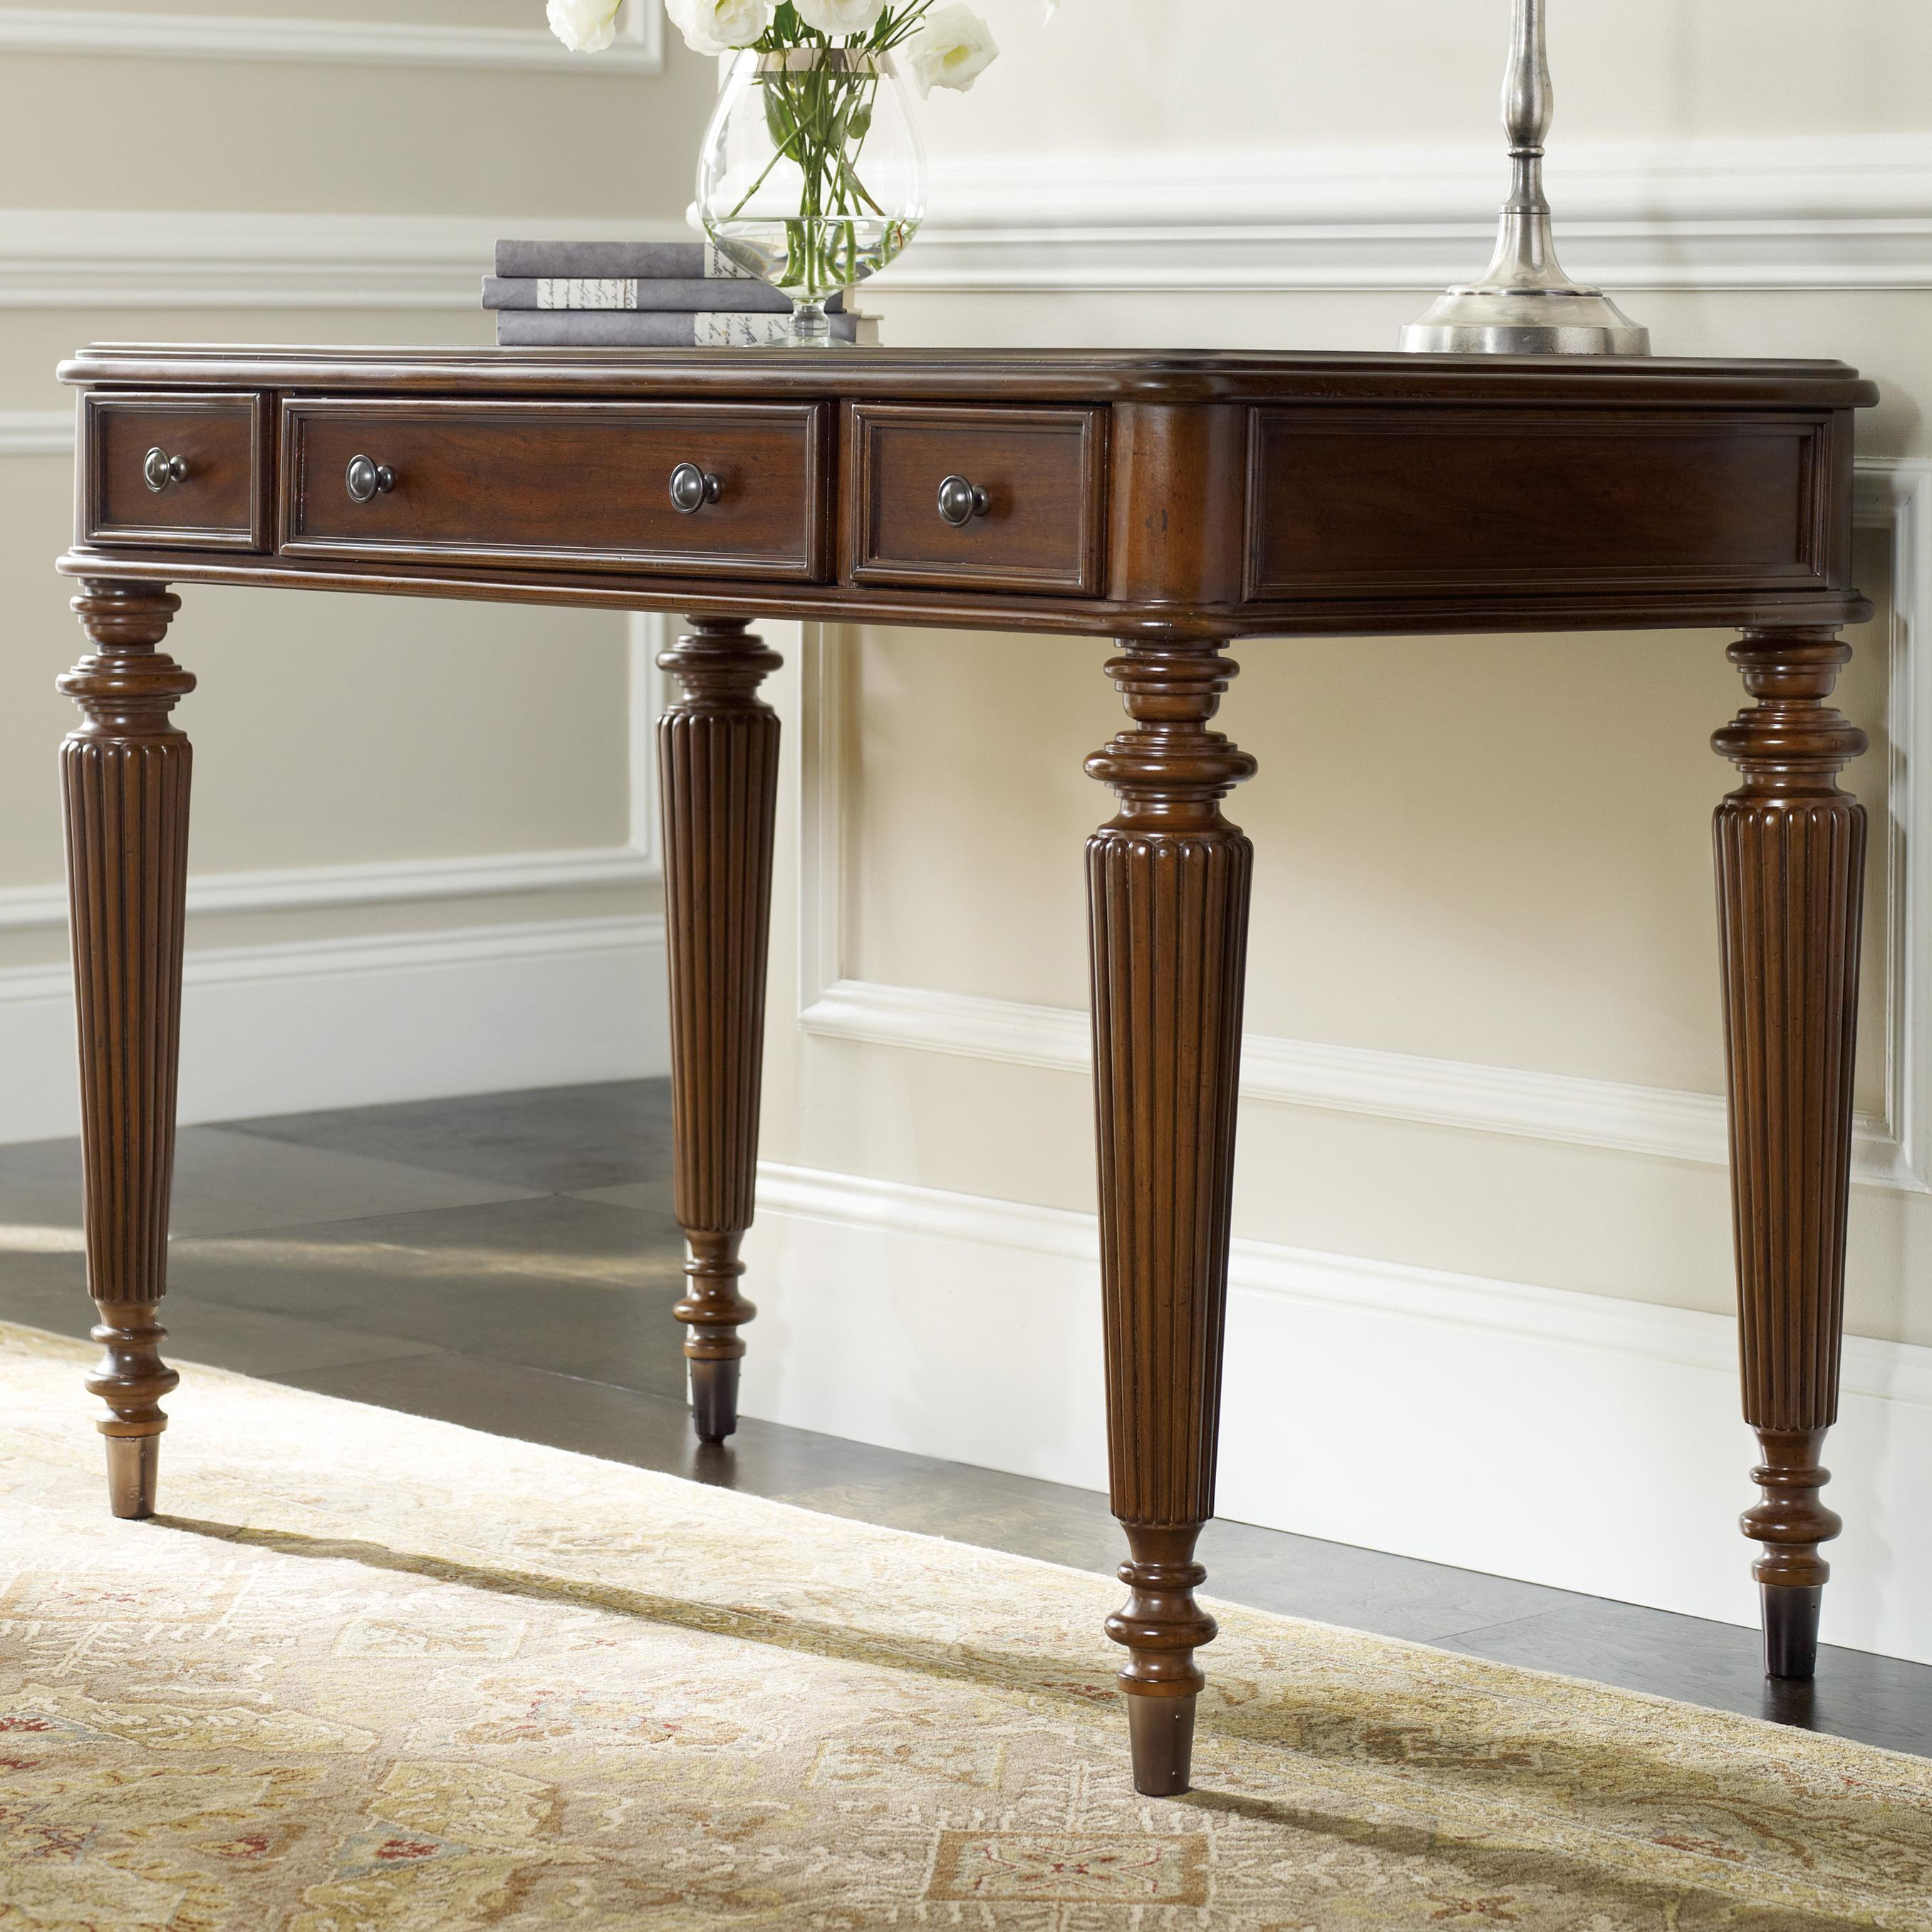 3 Drawer Leg Desk With Fluted Detail